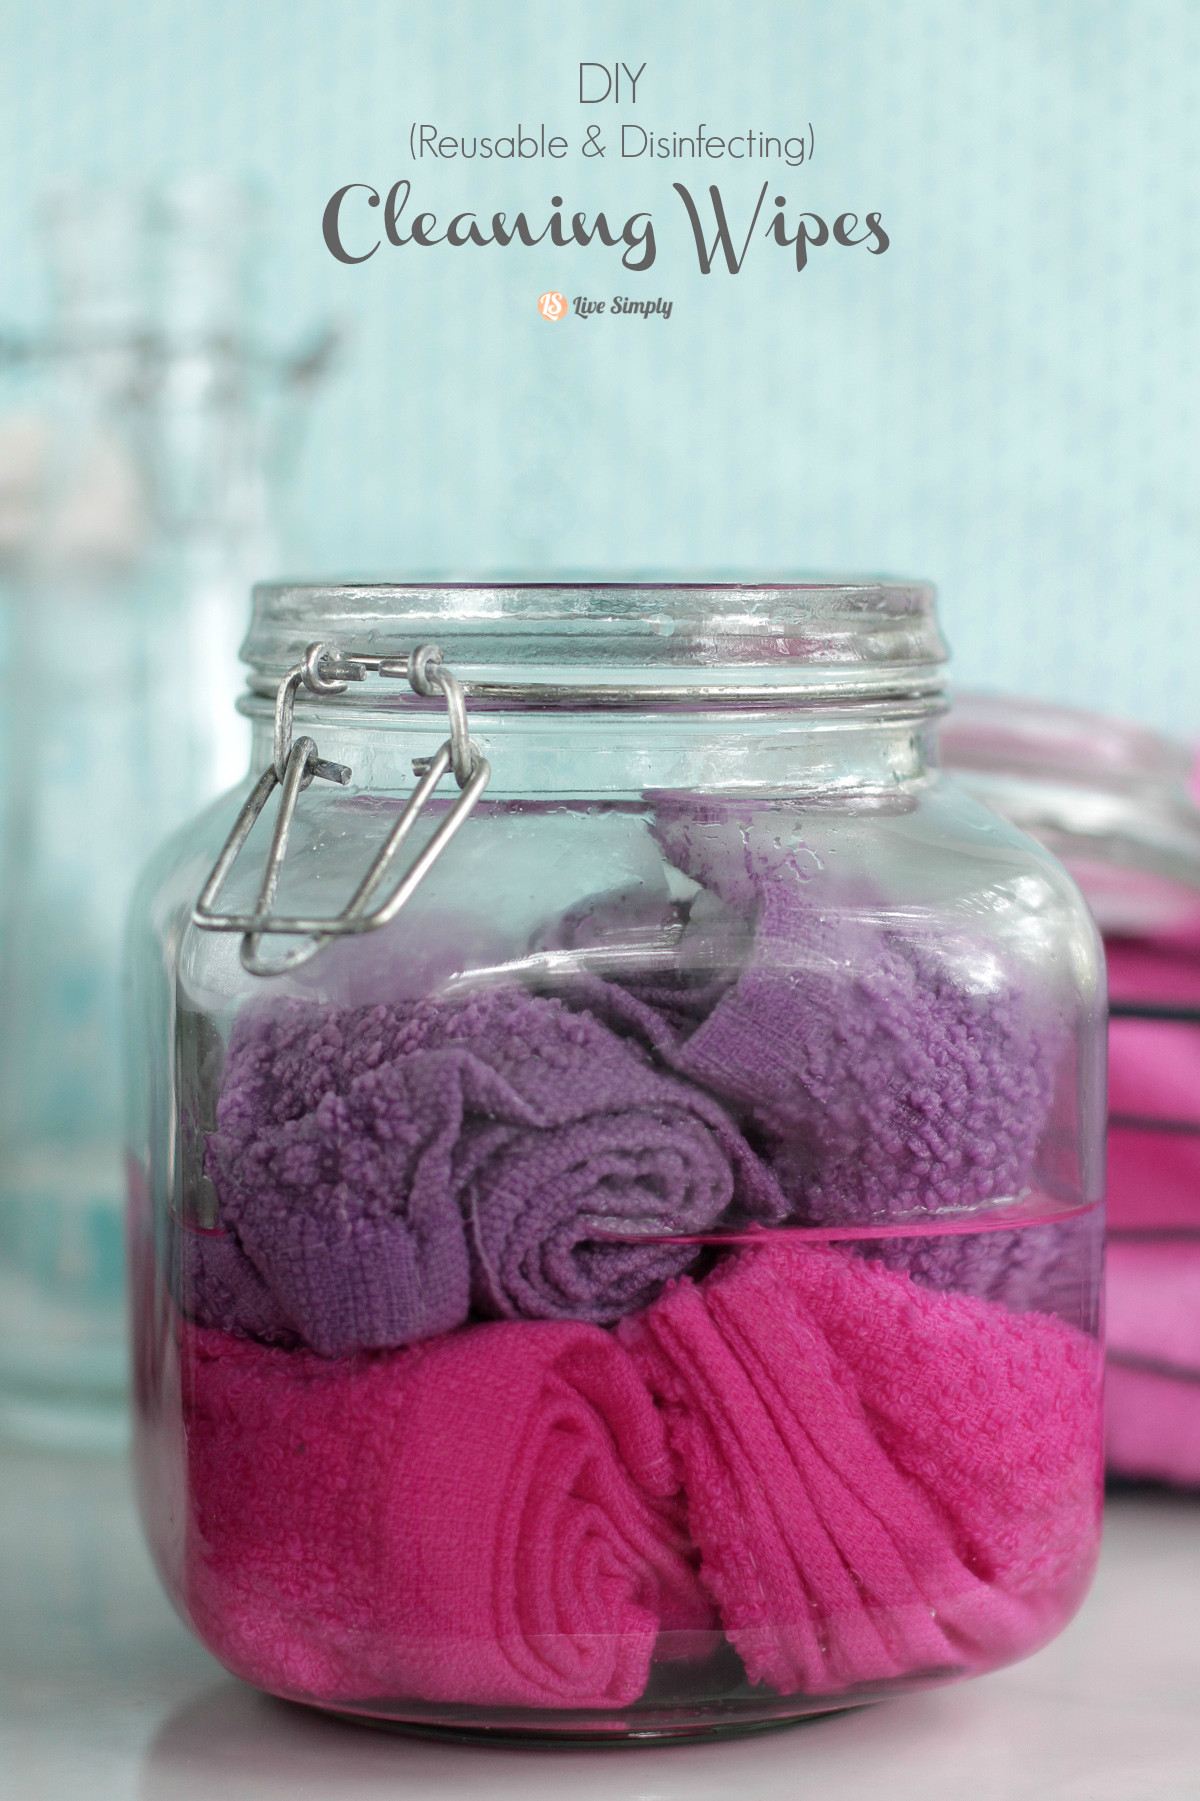 Best ideas about DIY Cleaning Wipes . Save or Pin DIY Cleaning Wipes Reusable & Disinfecting Live Simply Now.